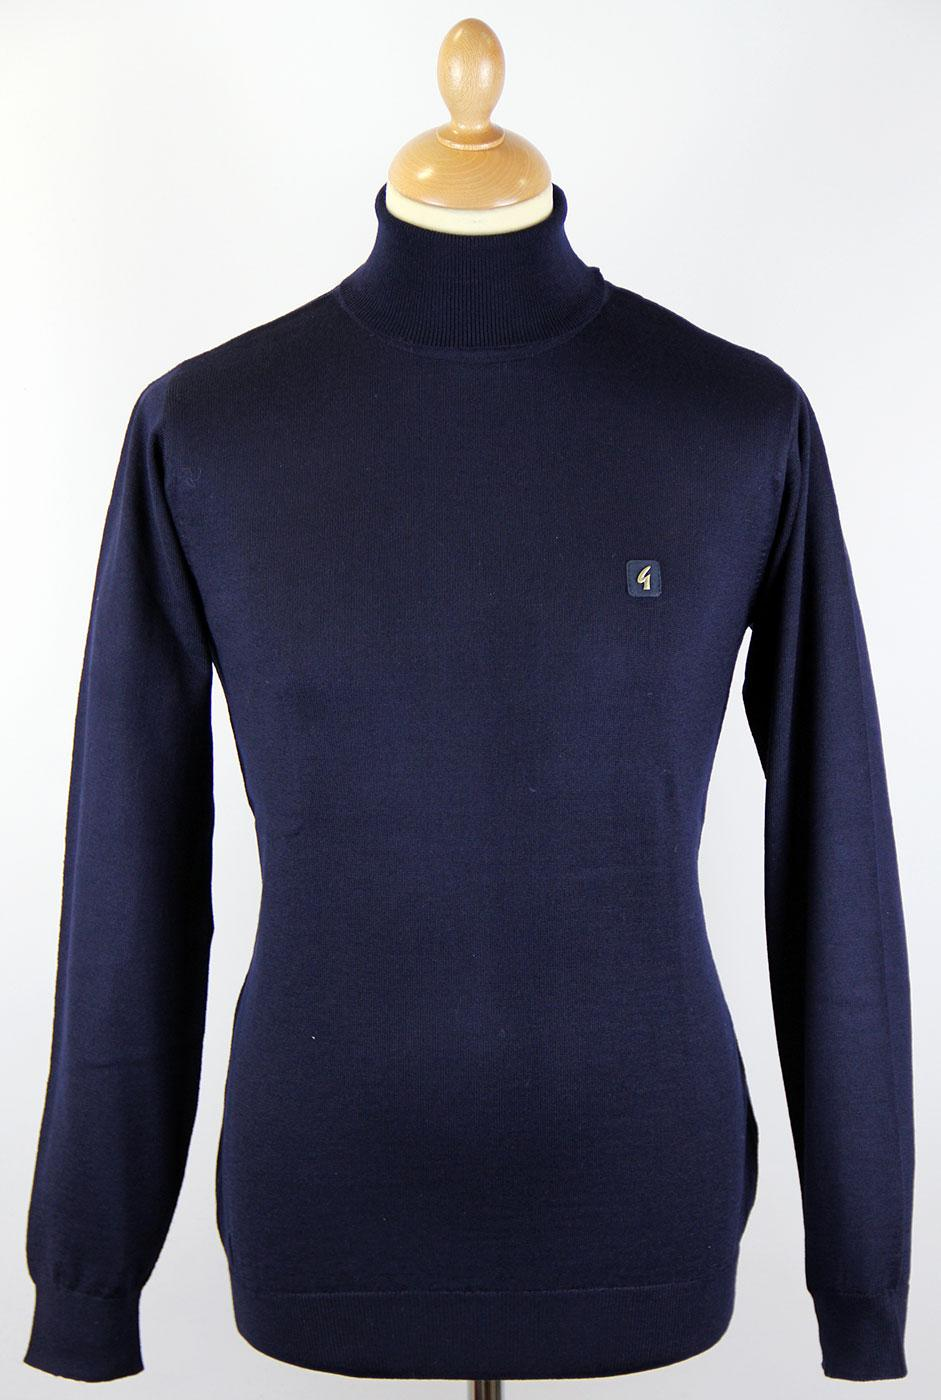 GABICCI VINTAGE Retro 60s Mod Roll Neck Jumper (N)